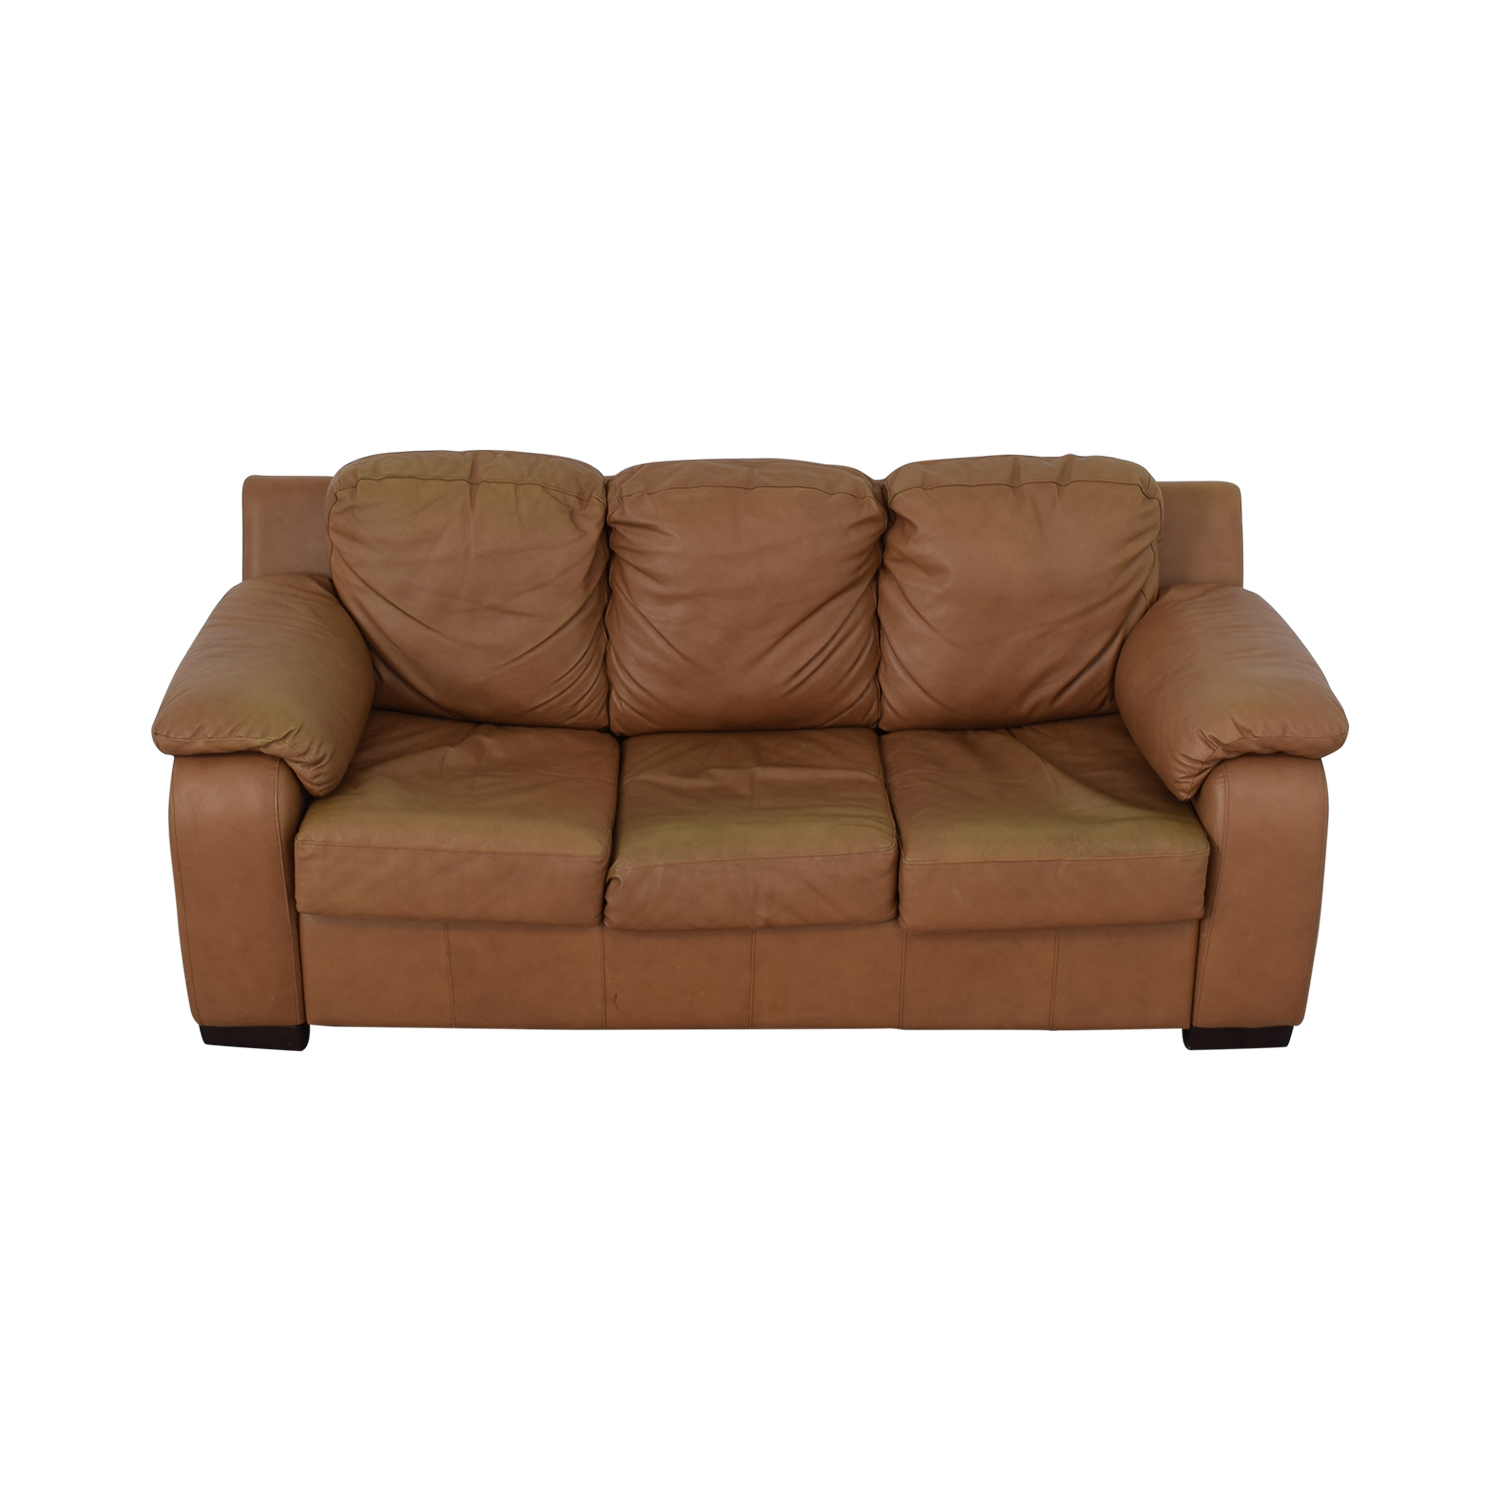 buy Jennifer Convertibles Jennifer Convertibles Cognac Three-Cushion Sofa with Pull-Out Full Convertible online